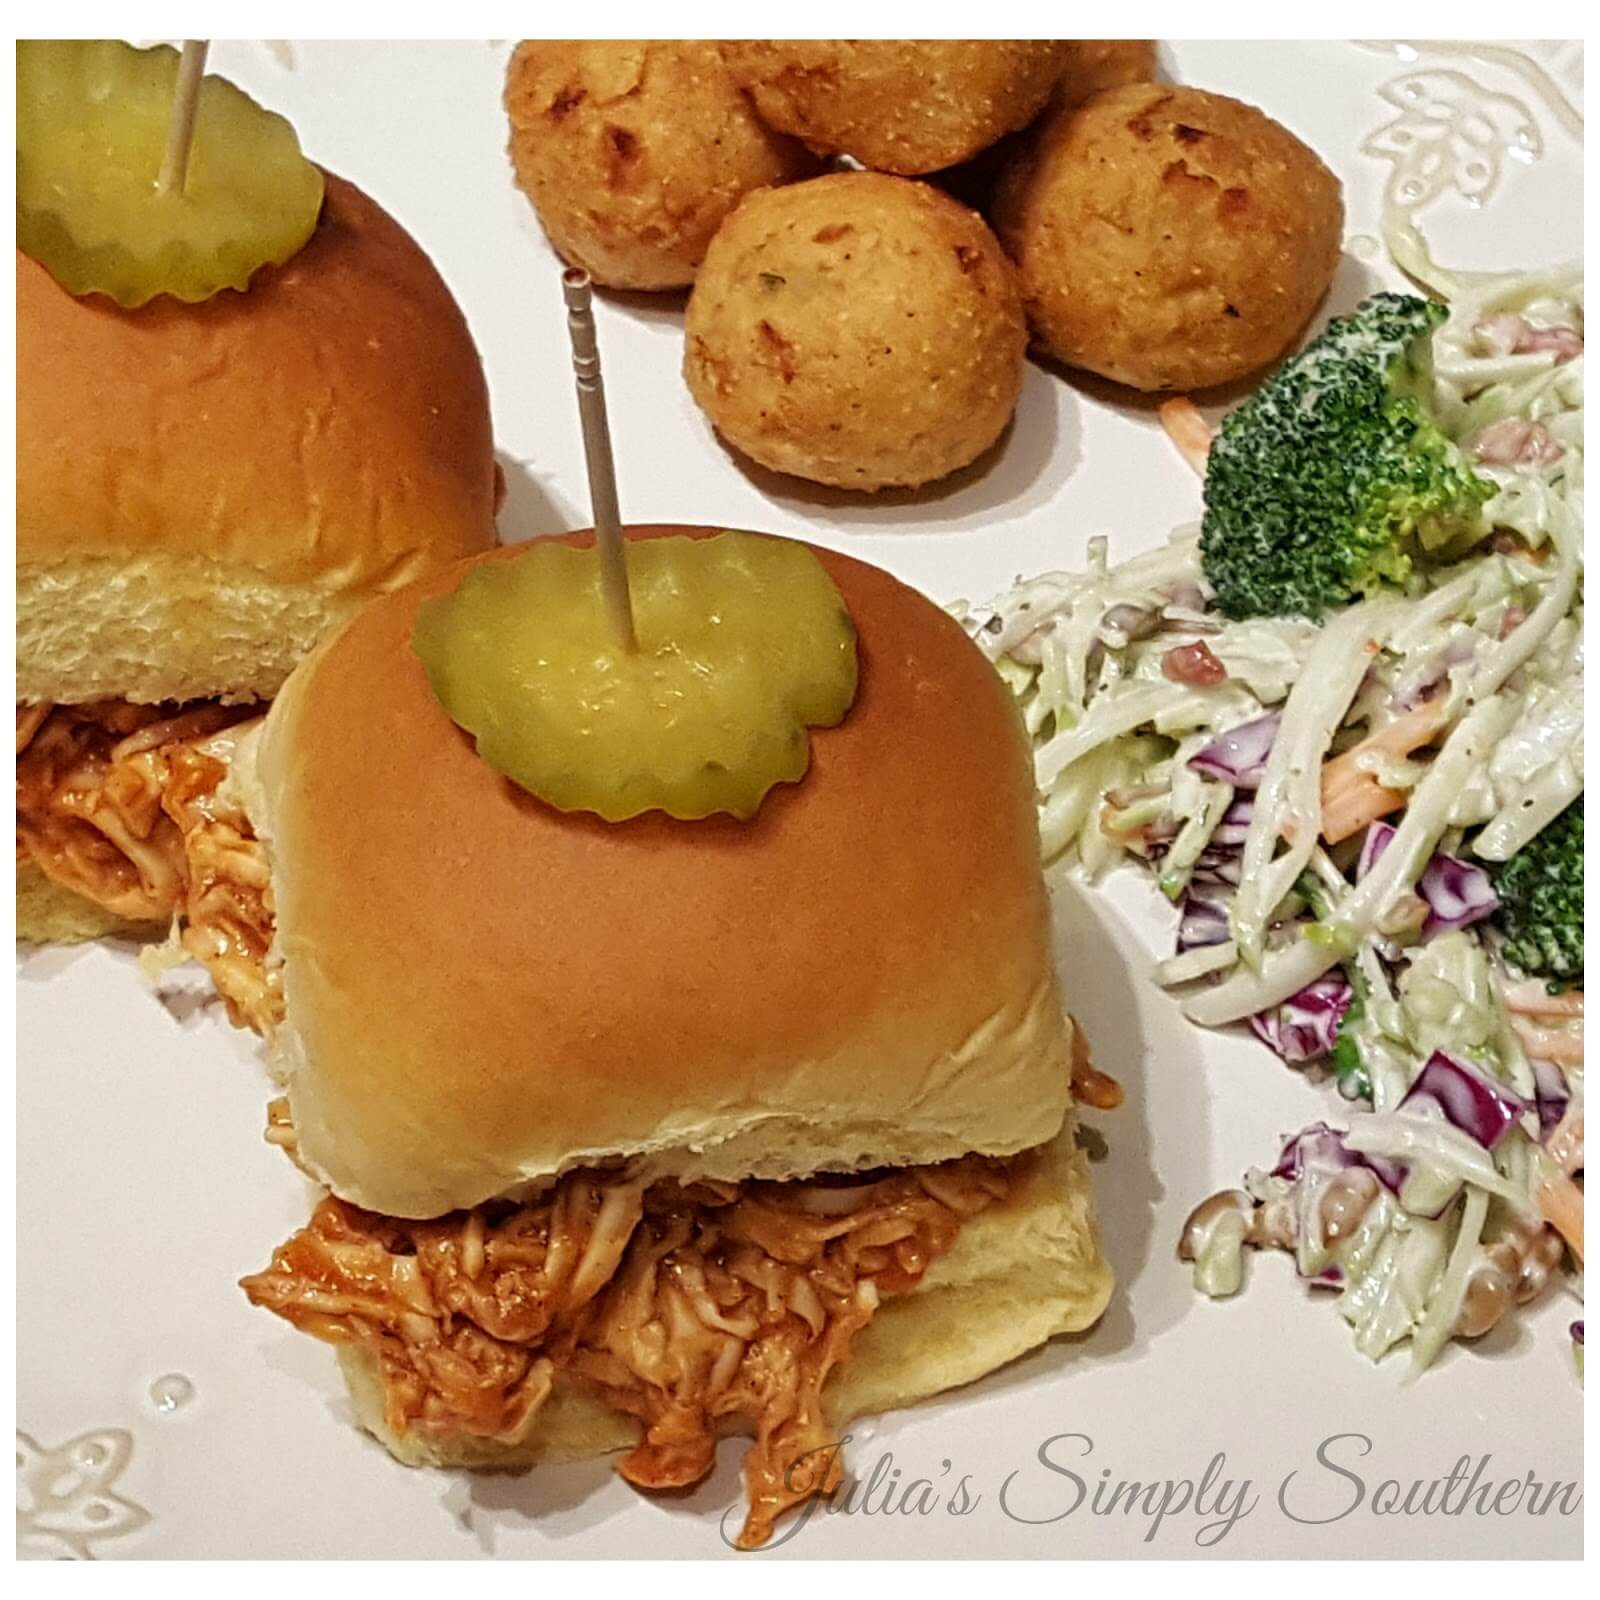 BBQ Chicken Sliders served with slaw and hush puppies